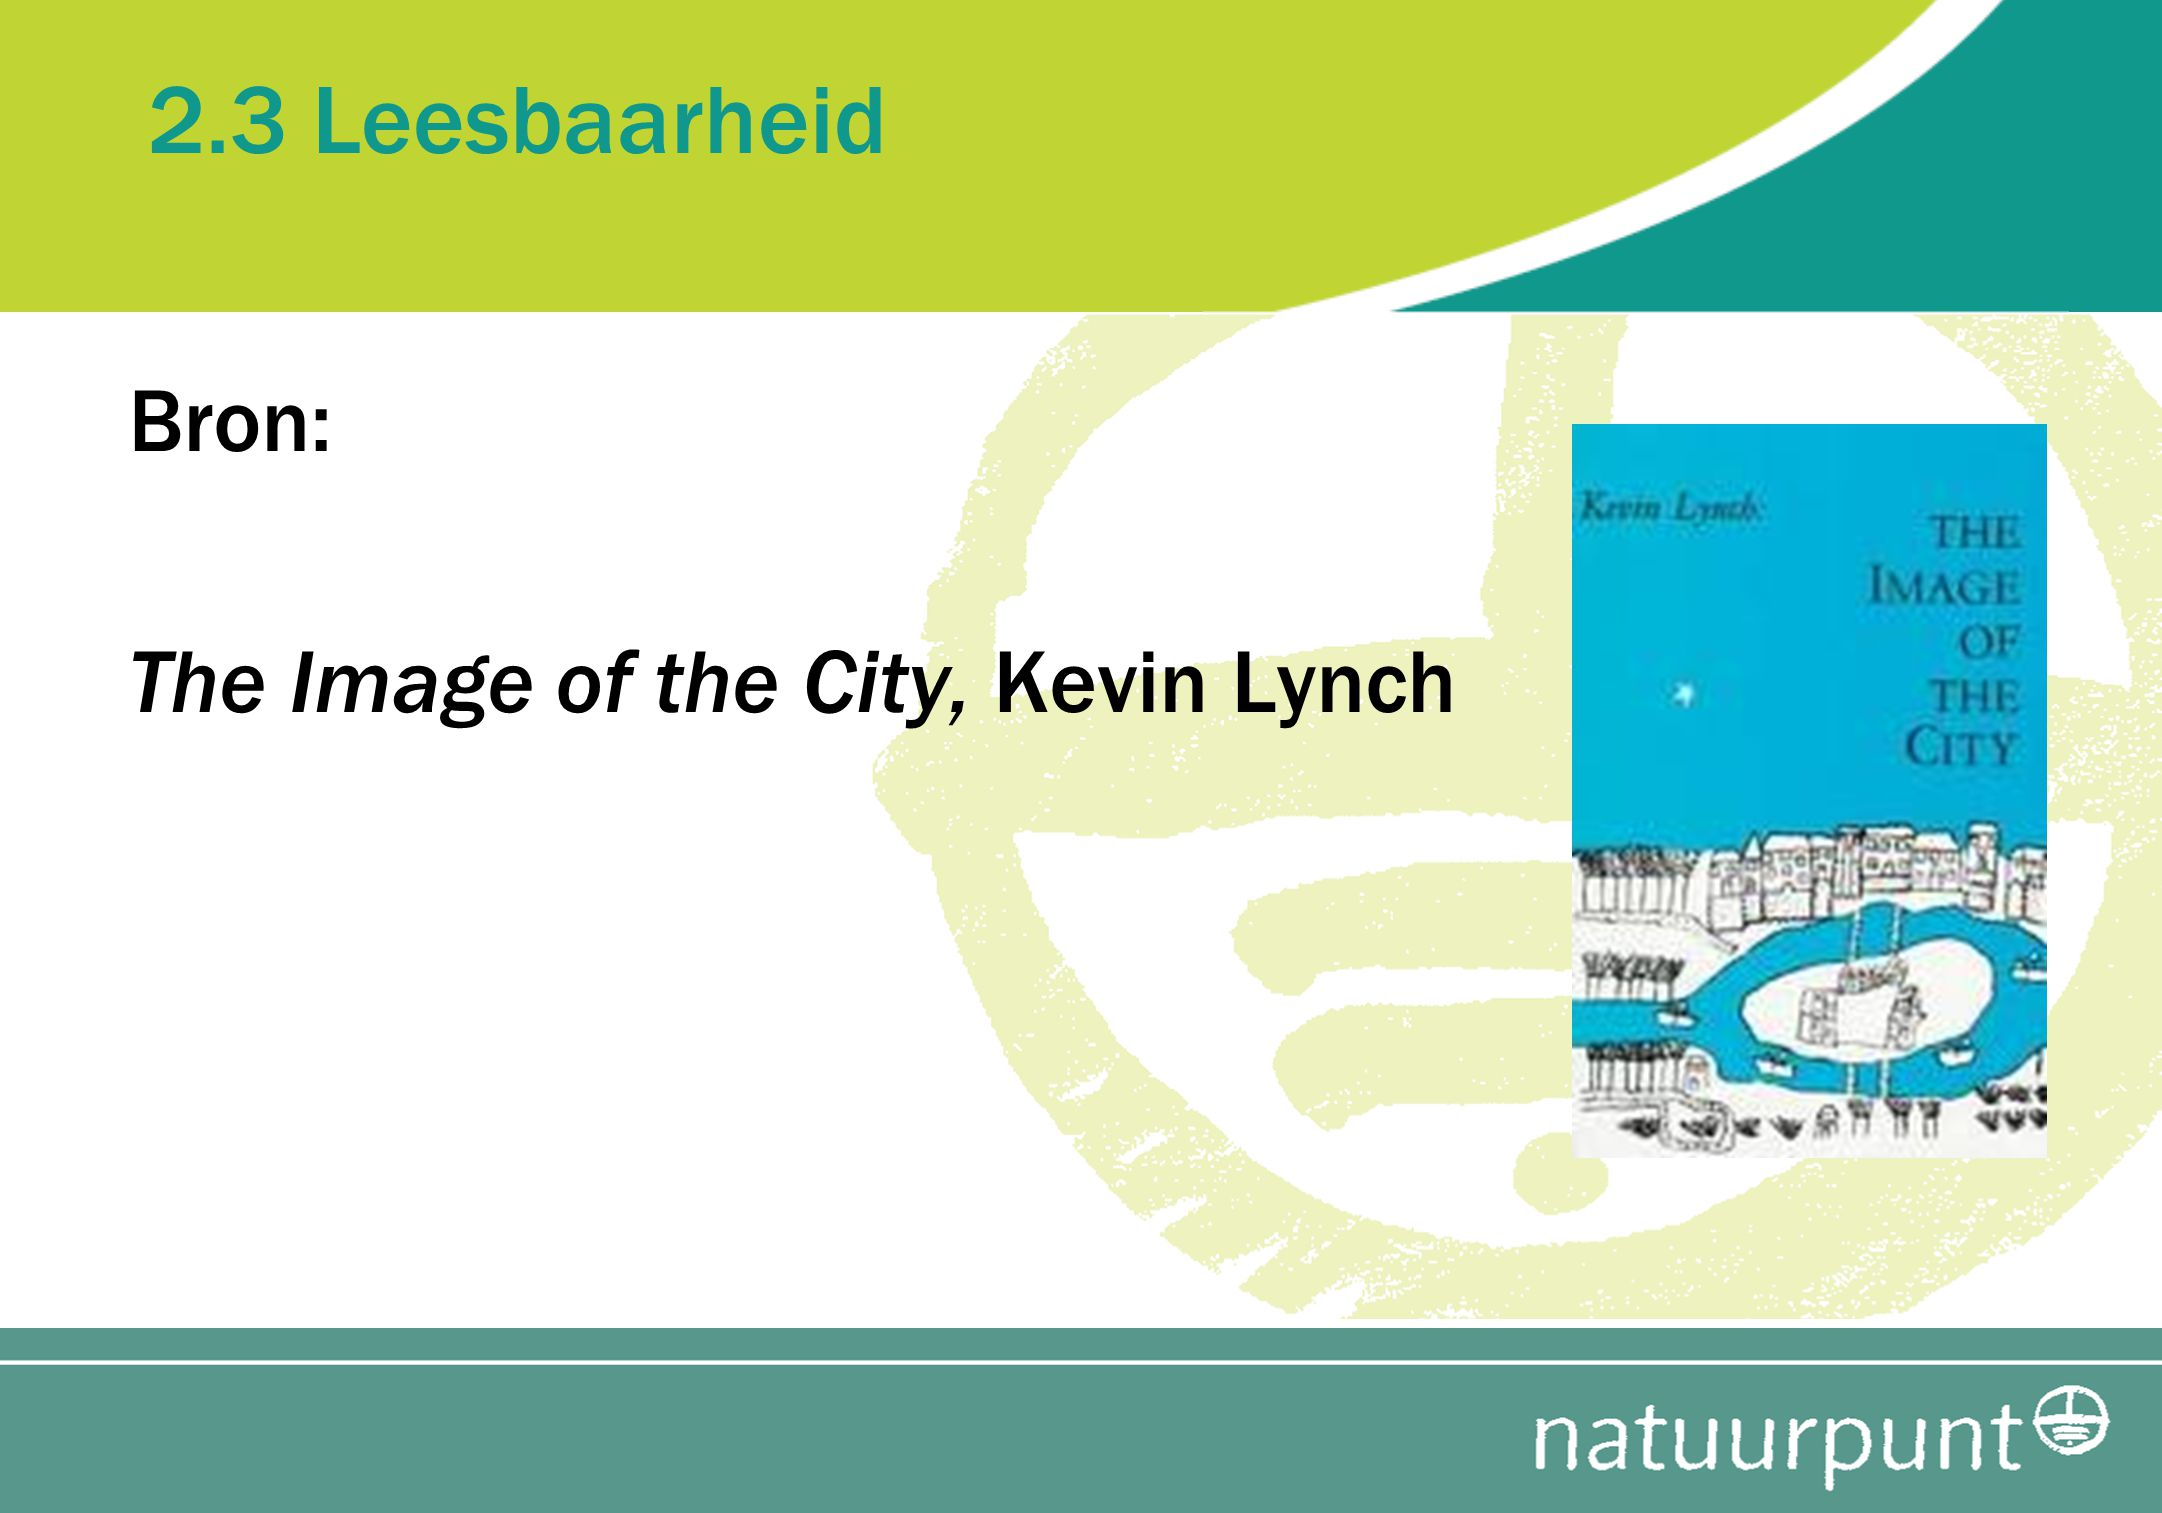 2.3 Leesbaarheid Bron: The Image of the City, Kevin Lynch